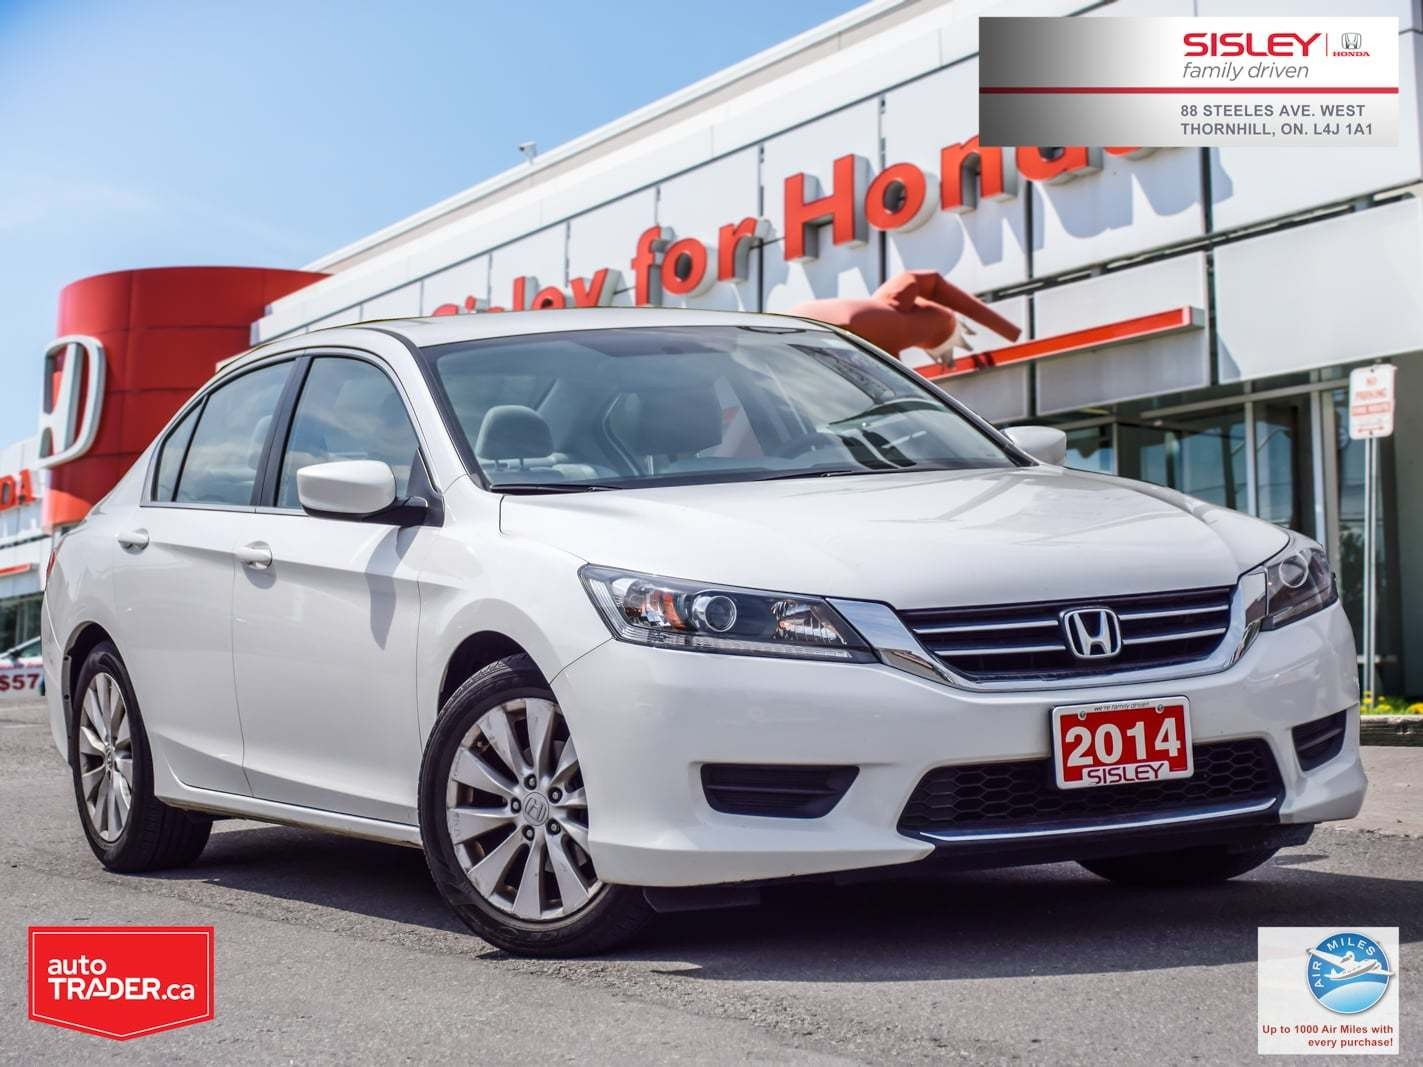 20140 honda accord 1494 1